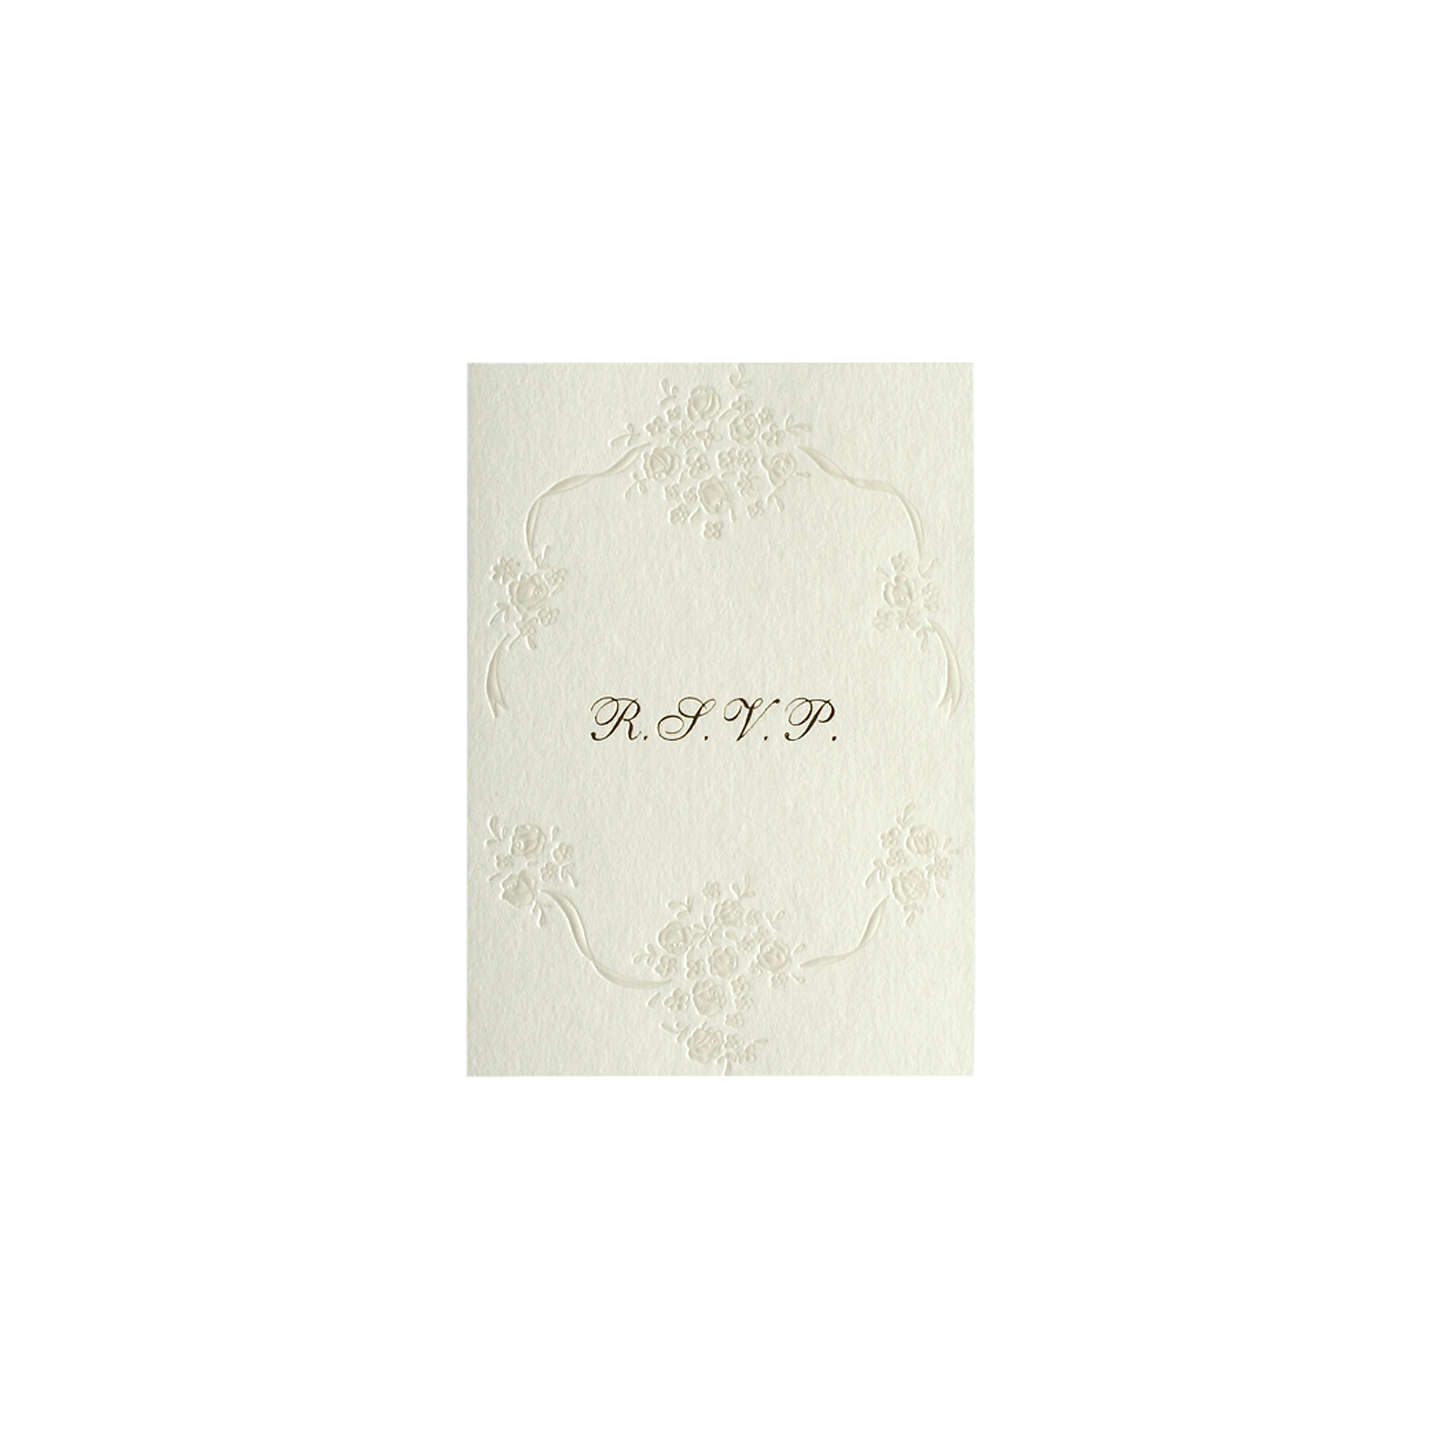 CCA Pearls Personalised Wedding RSVP Reply Cards, Pack of 60, Gold ...